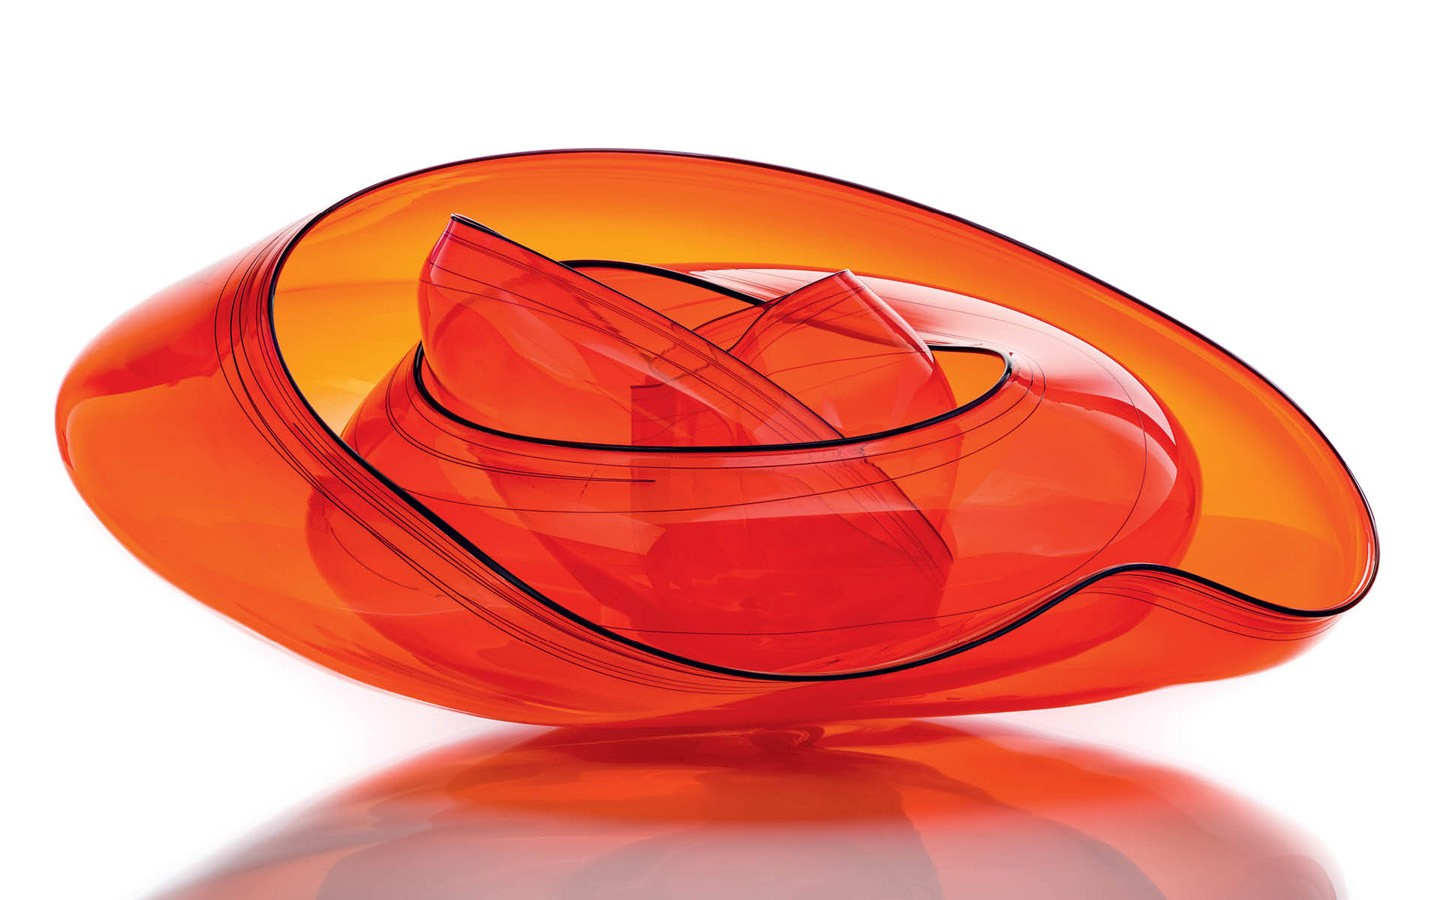 Fire Orange Basket Set The Dale Chihuly Collection.